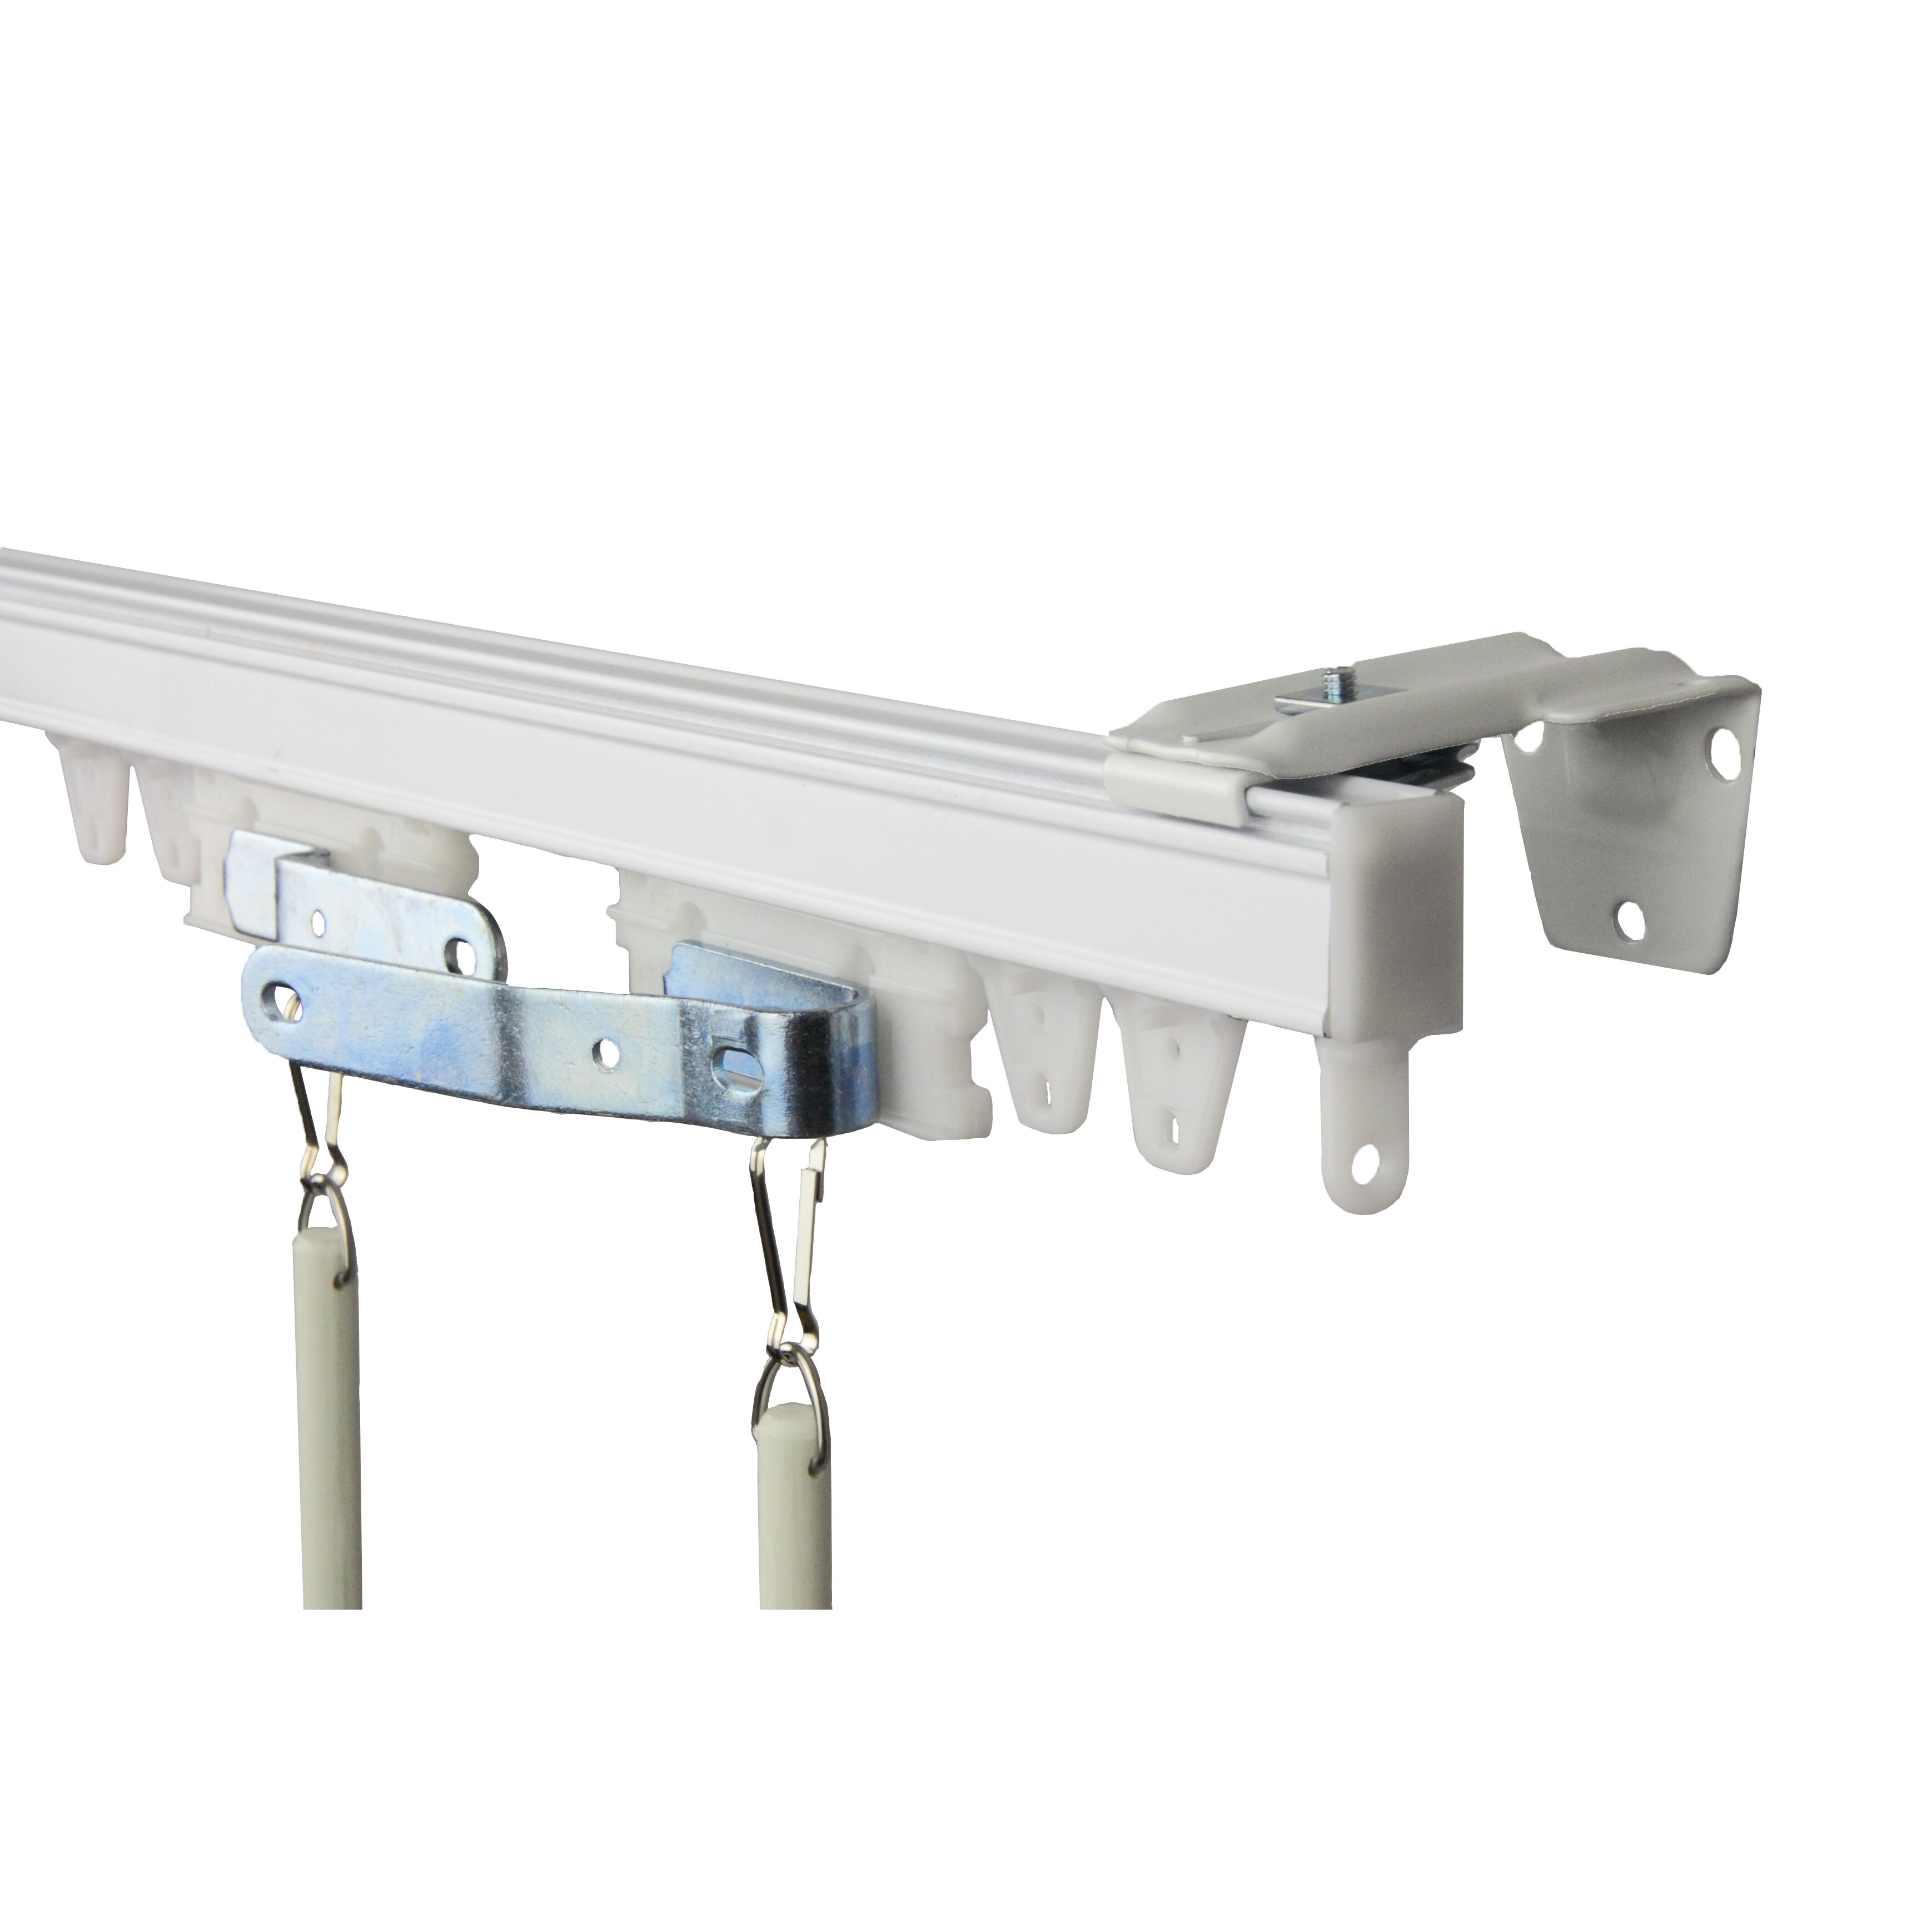 Curtain track cover - Quick View Commercial Curtain Track Kit